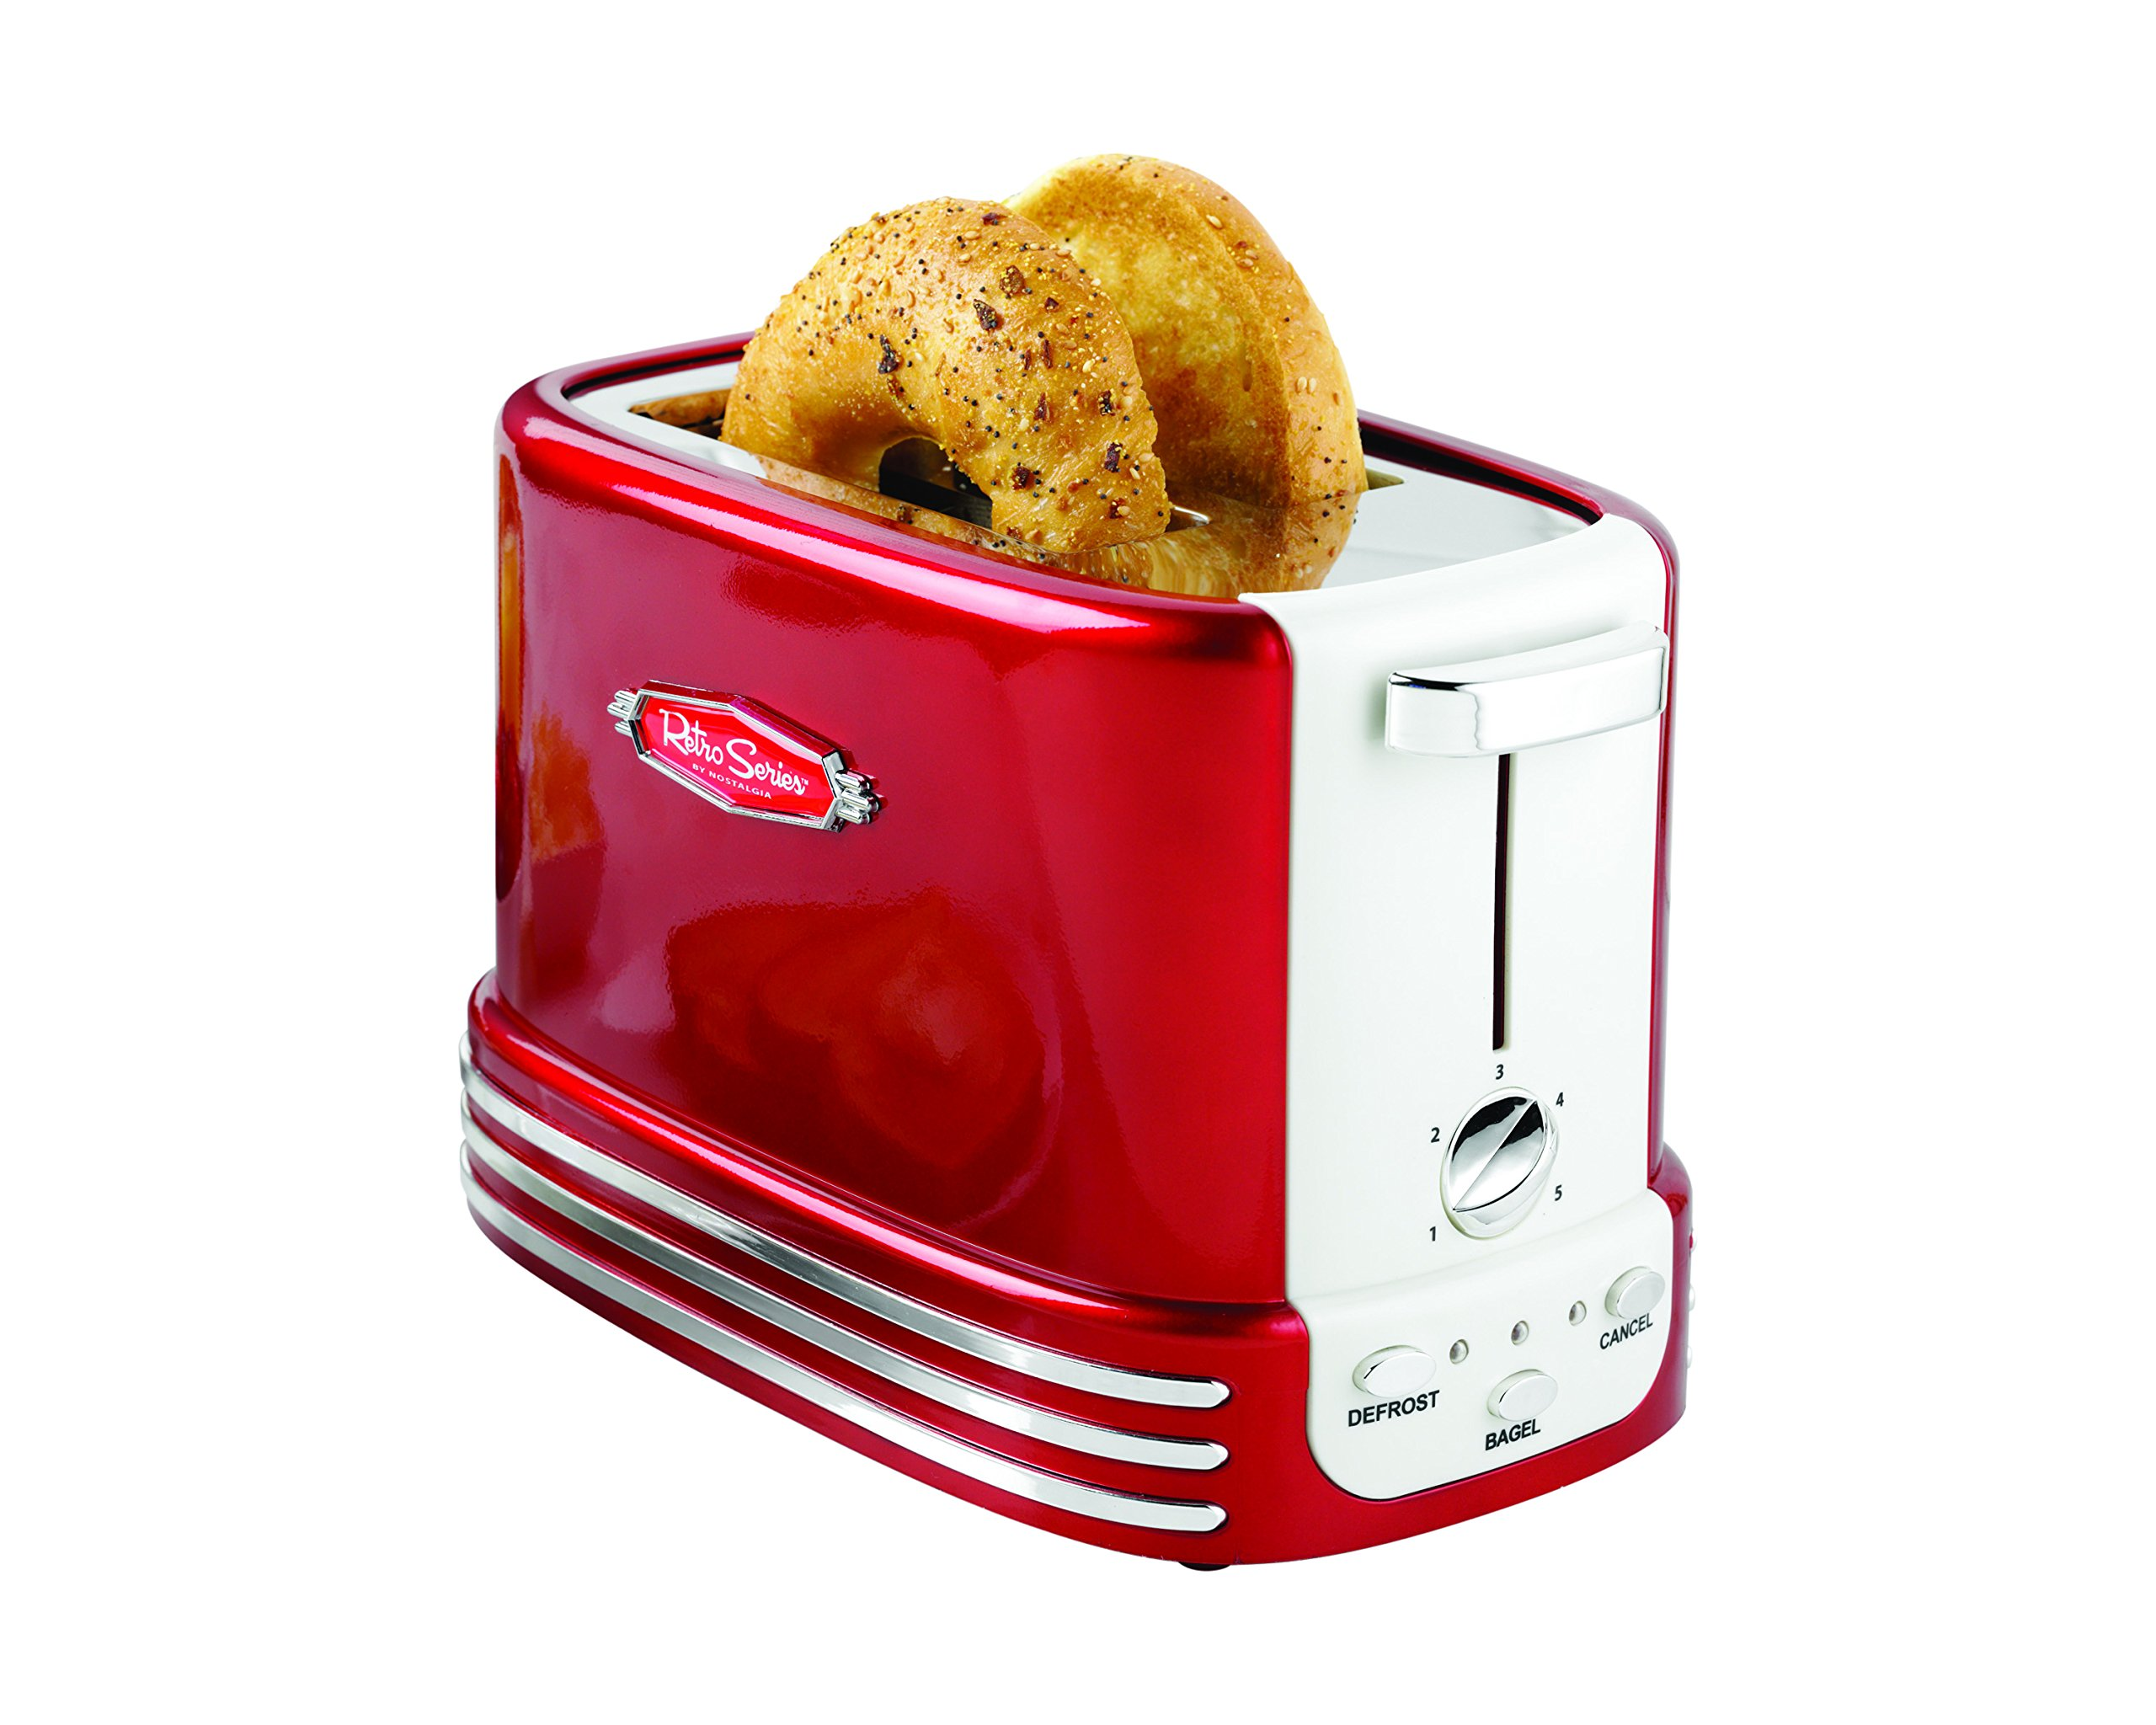 wmf fresh toasters or en toaster cut ready edition bueno fast bread for